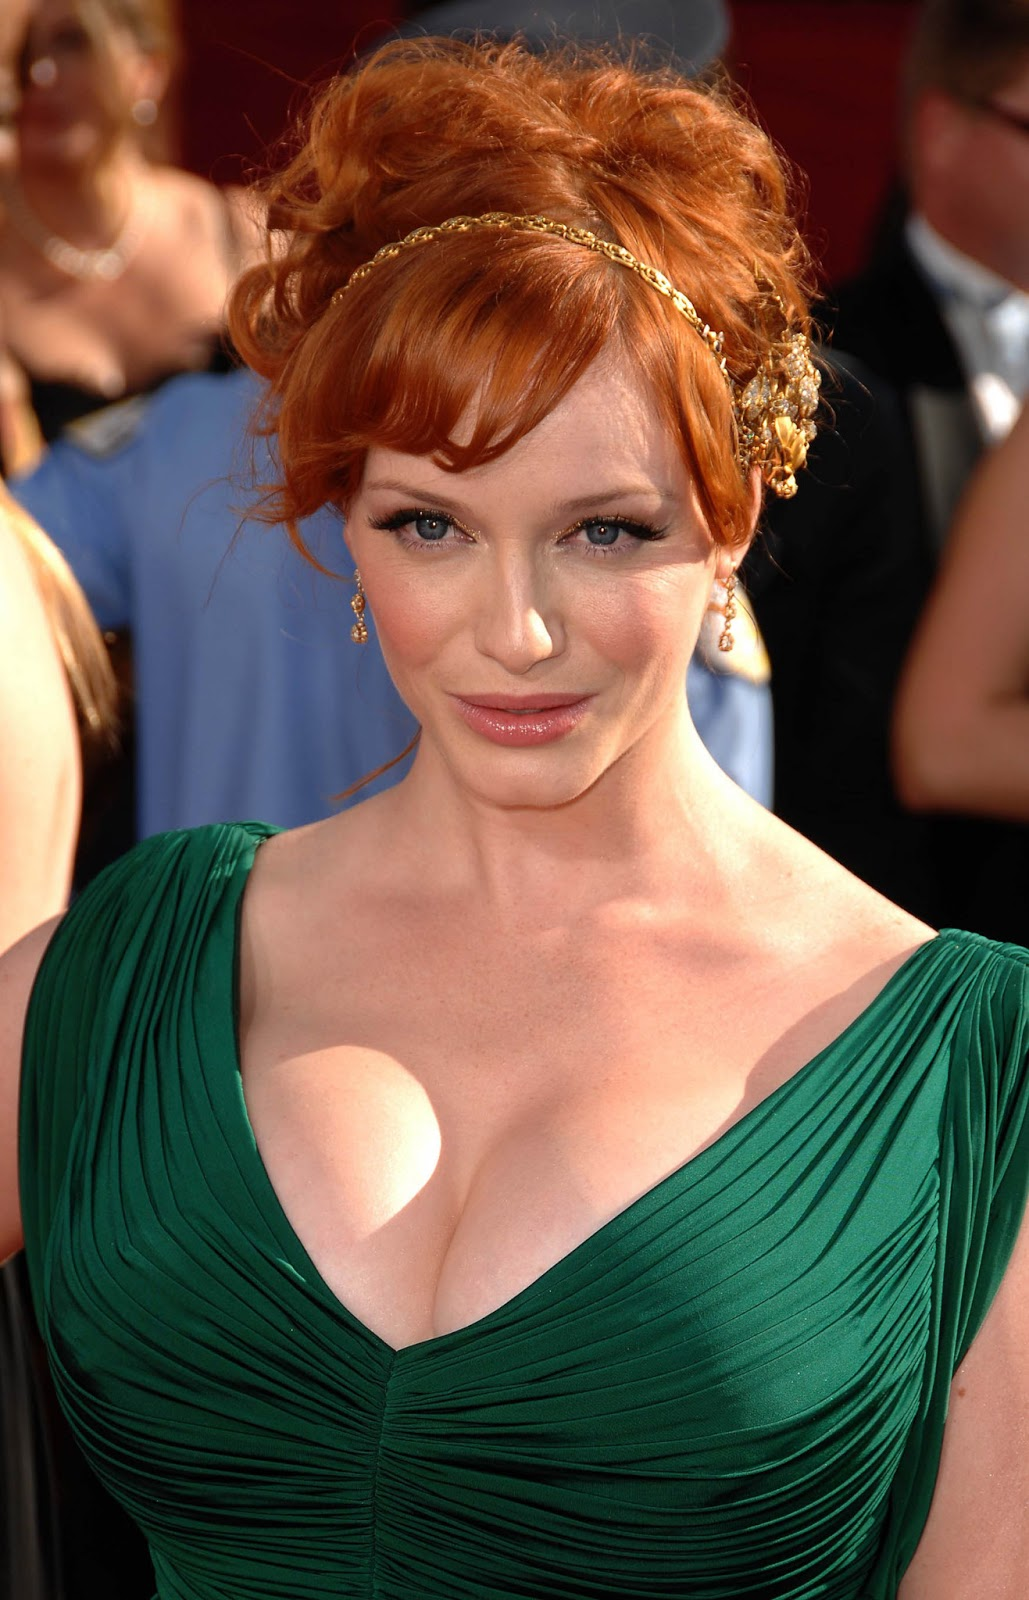 Actress Actors Pictures Collections Christina Hendricks